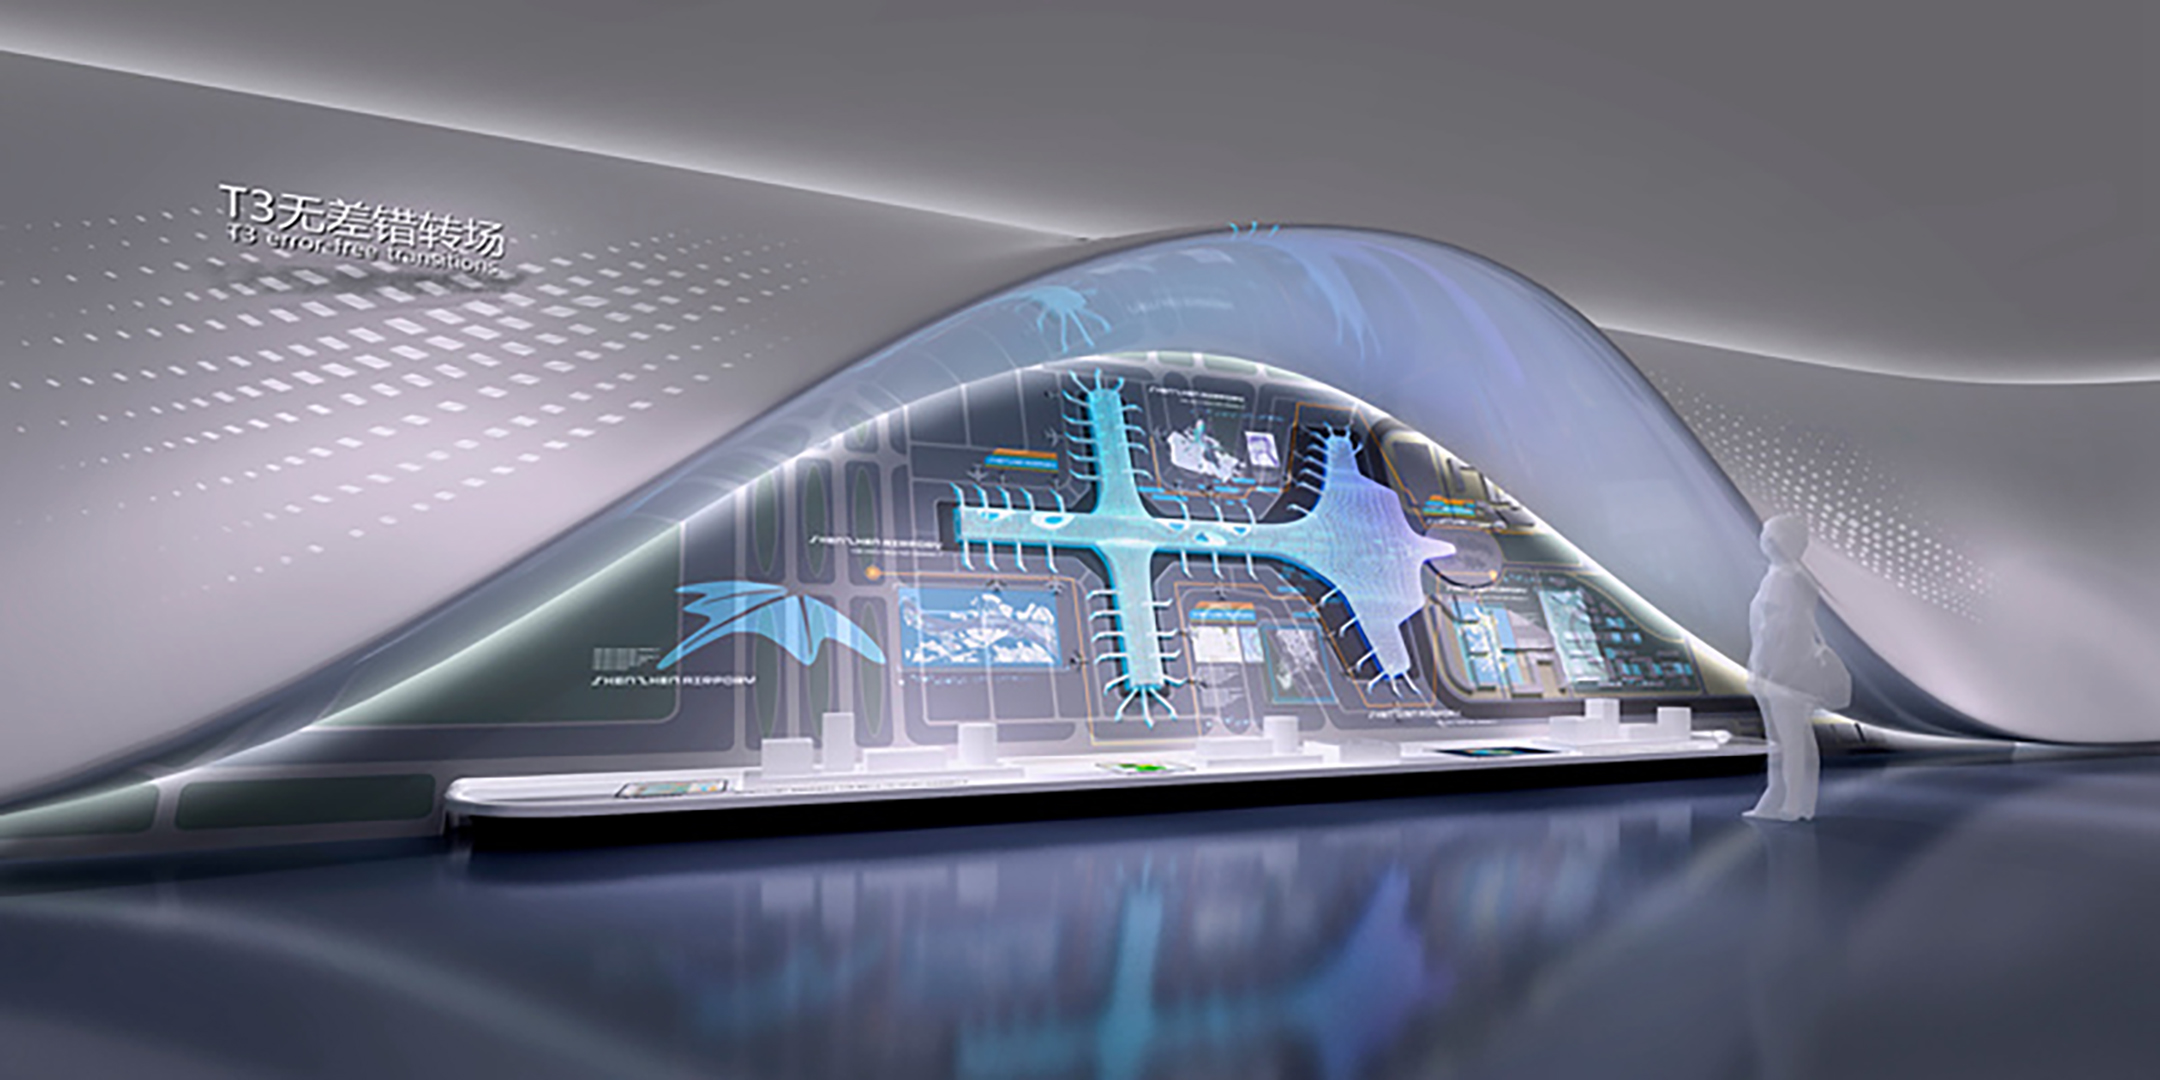 66-shenzhen-airport-enterprise-development-exhibition-hall